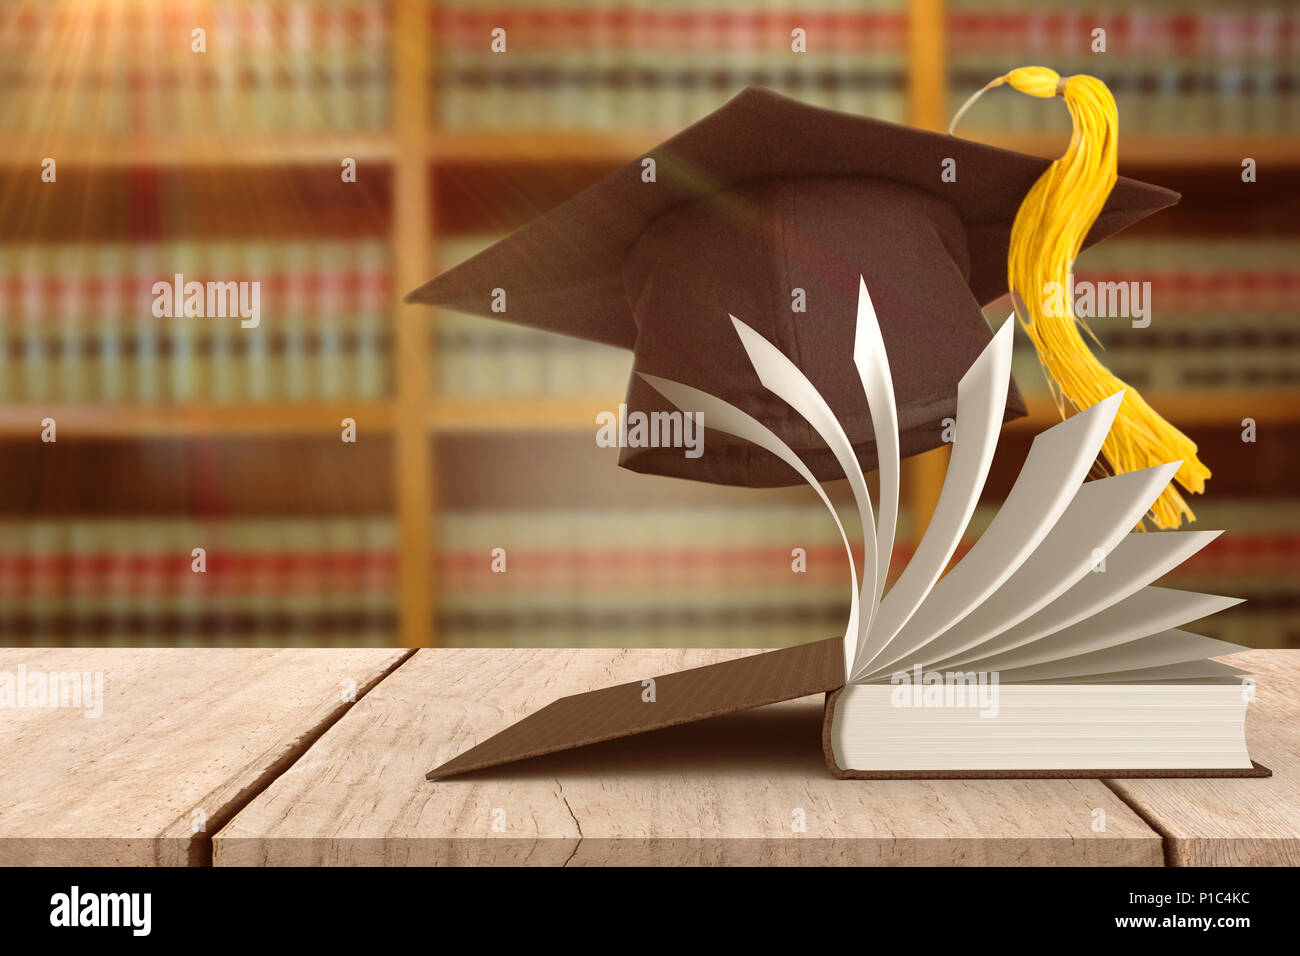 Composite image of mortar board - Stock Image